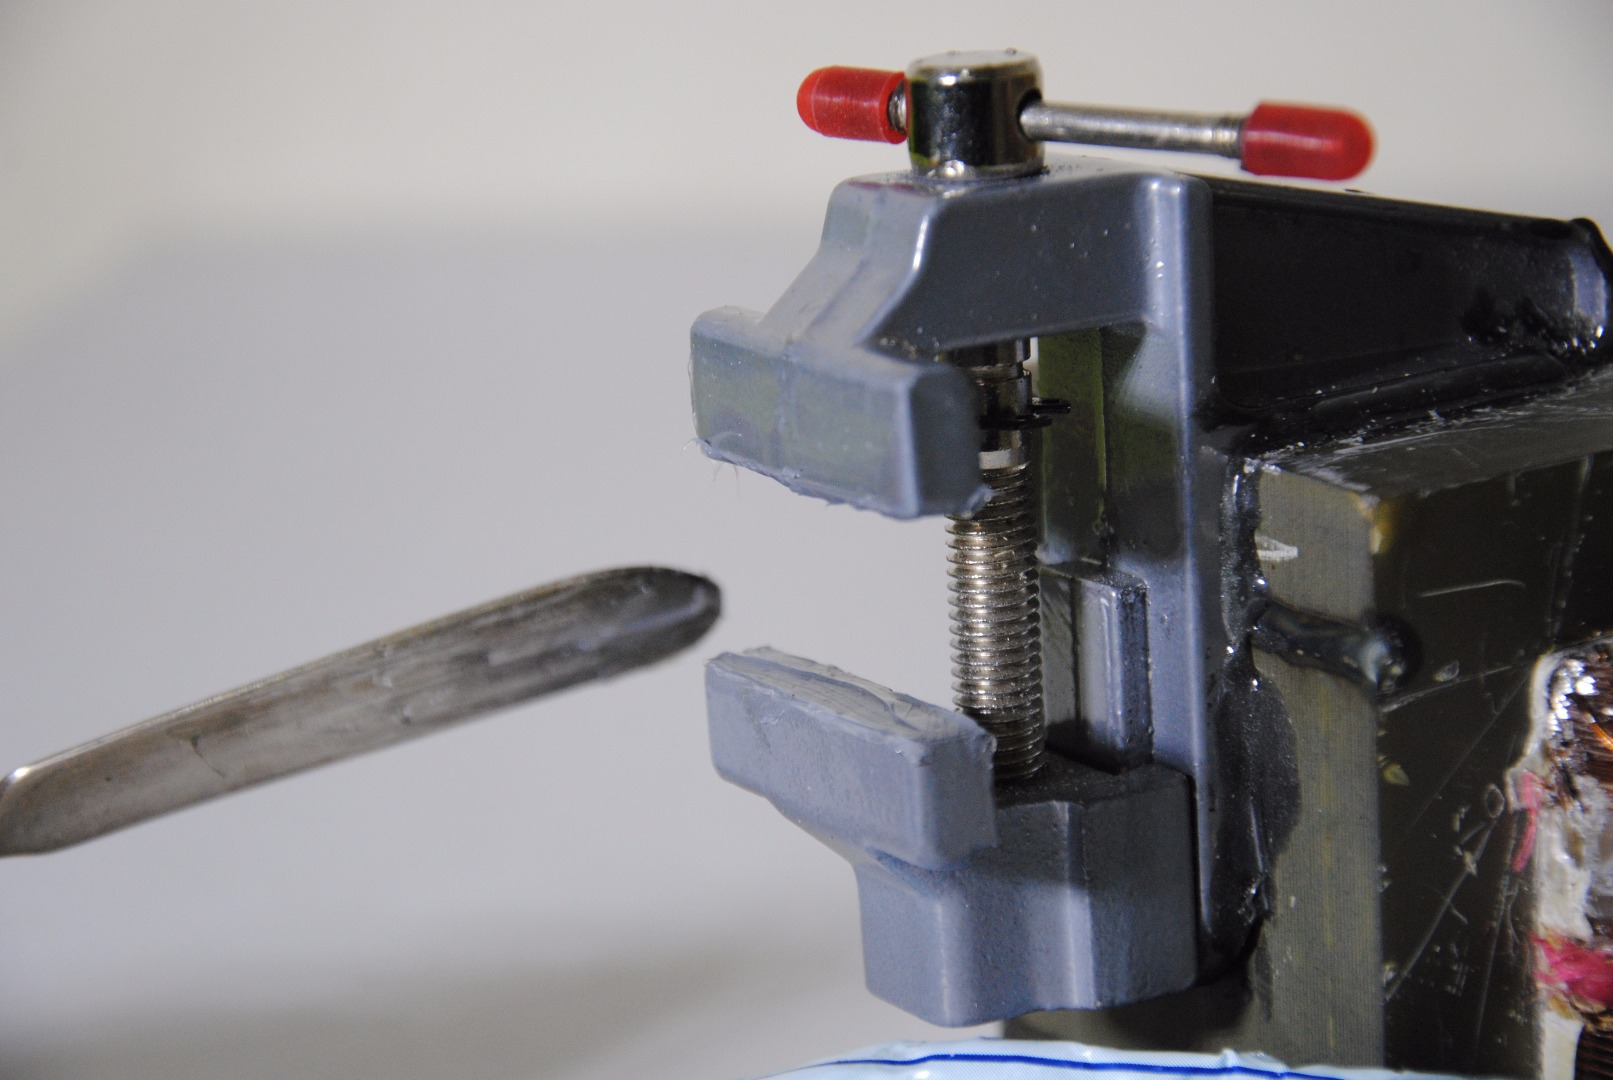 Picture of Upgrade the Strength of the Jaws Grip (On the PCB) W/ Silicone Adhesive